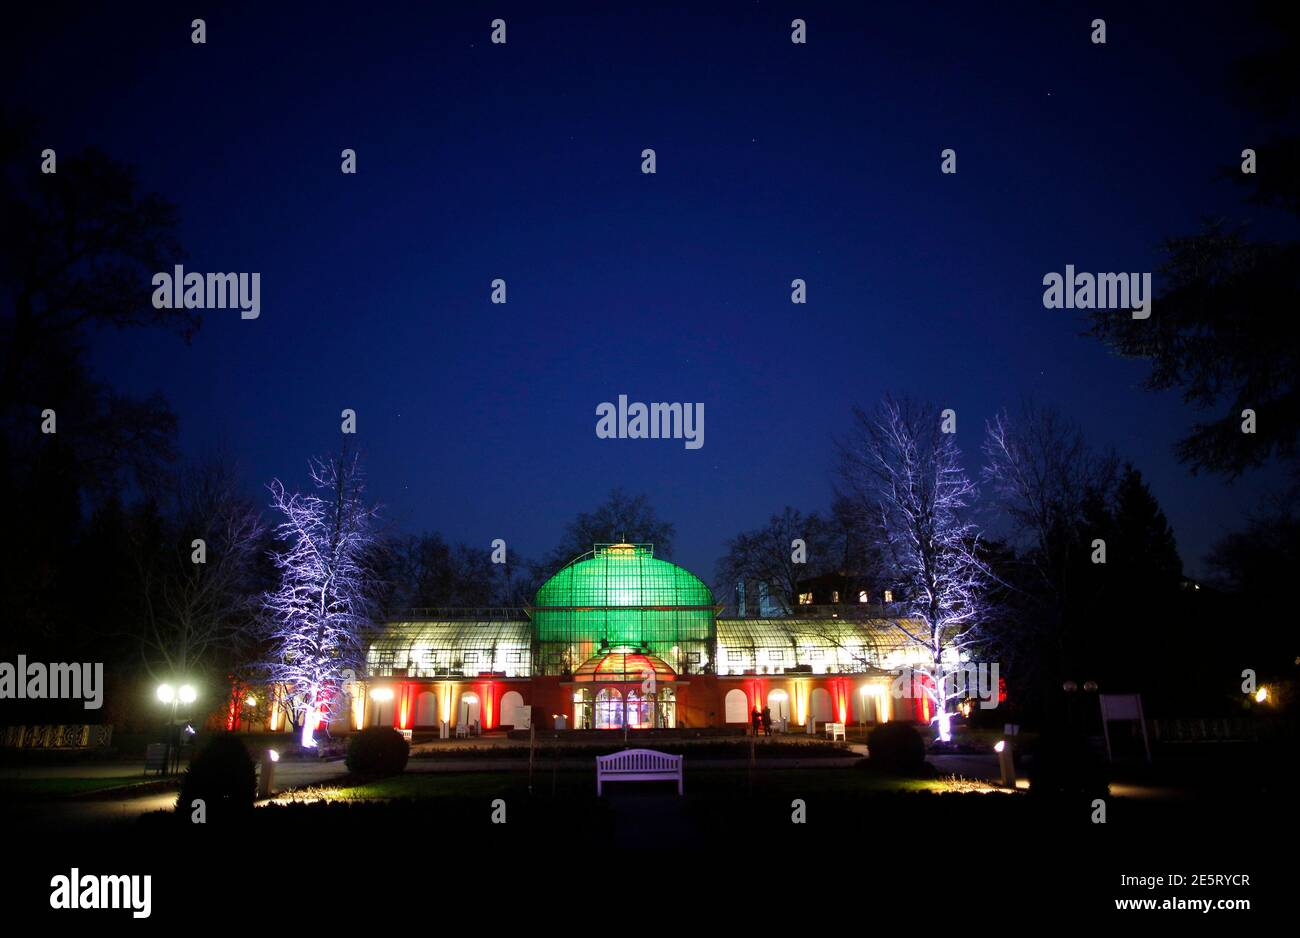 "A light installation by artist Wolfgang Flammersfeld is seen on a building at Palmengarten during the exhibition ""Winterlicht"" (winter light) in Frankfurt January 14, 2013. REUTERS/Lisi Niesner  (GERMANY - Tags: SOCIETY) Stock Photo"